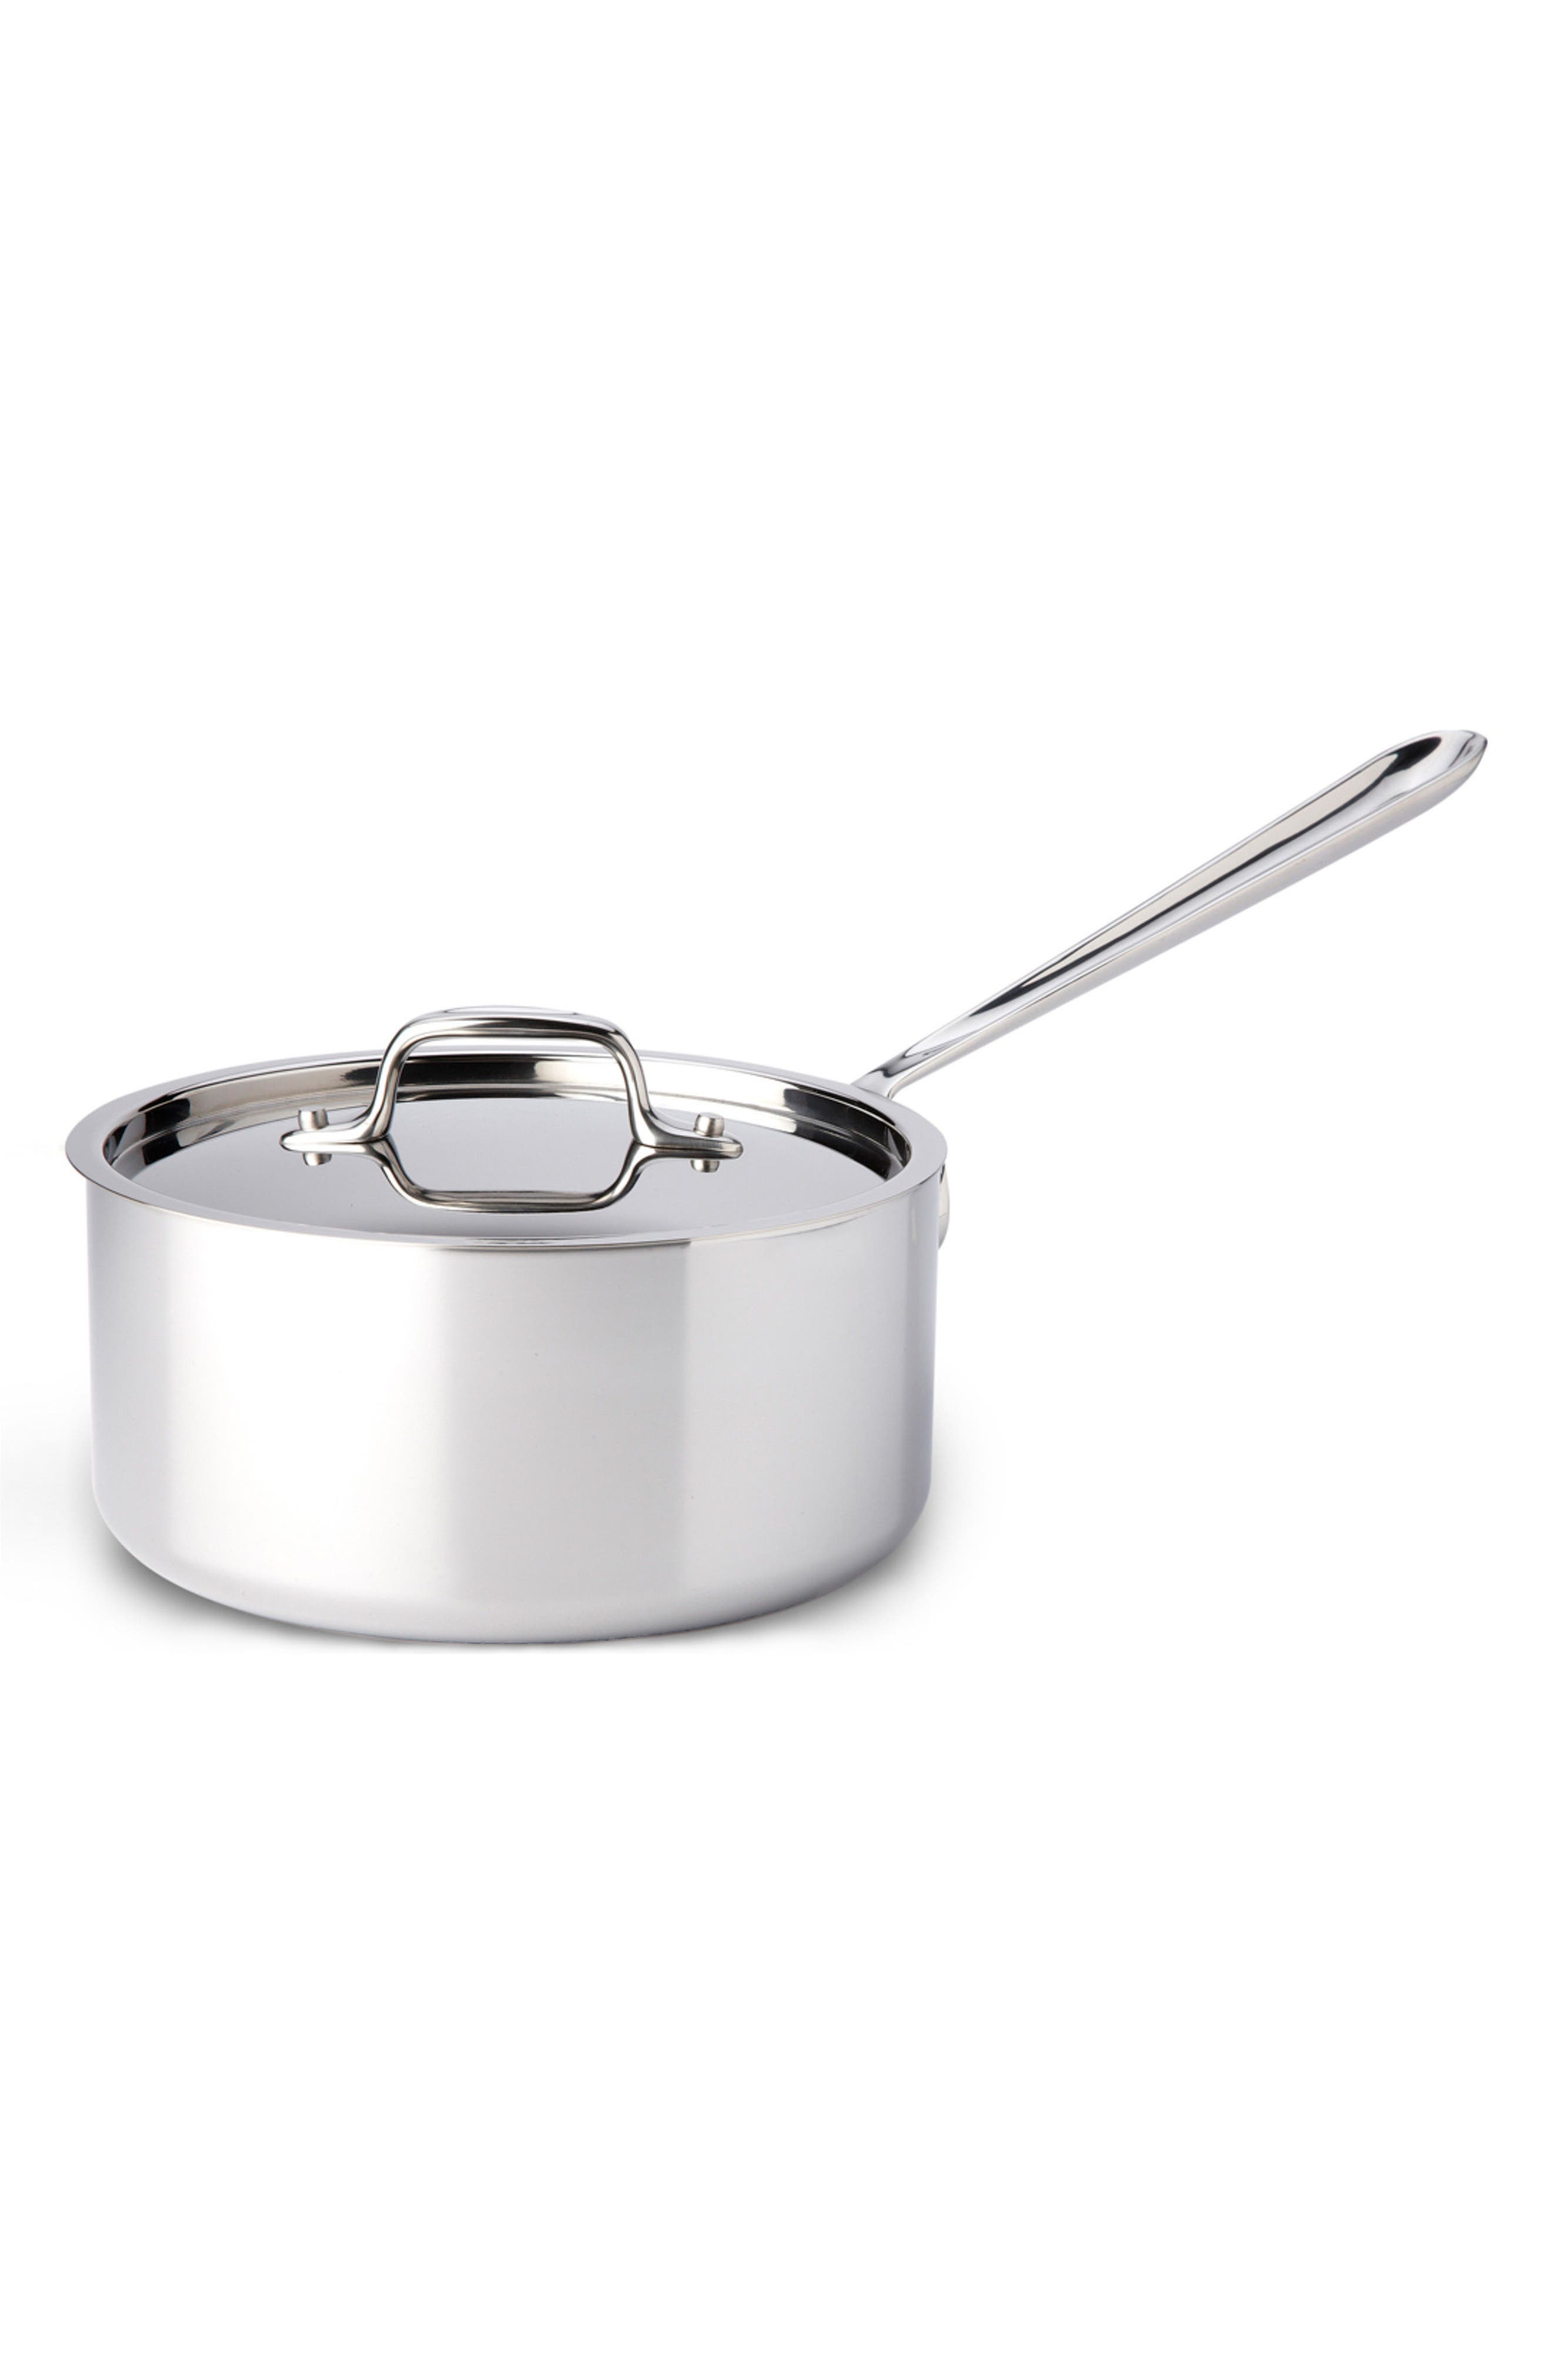 D3 3-Quart Stainless Steel Sauce Pan,                         Main,                         color, STAINLESS